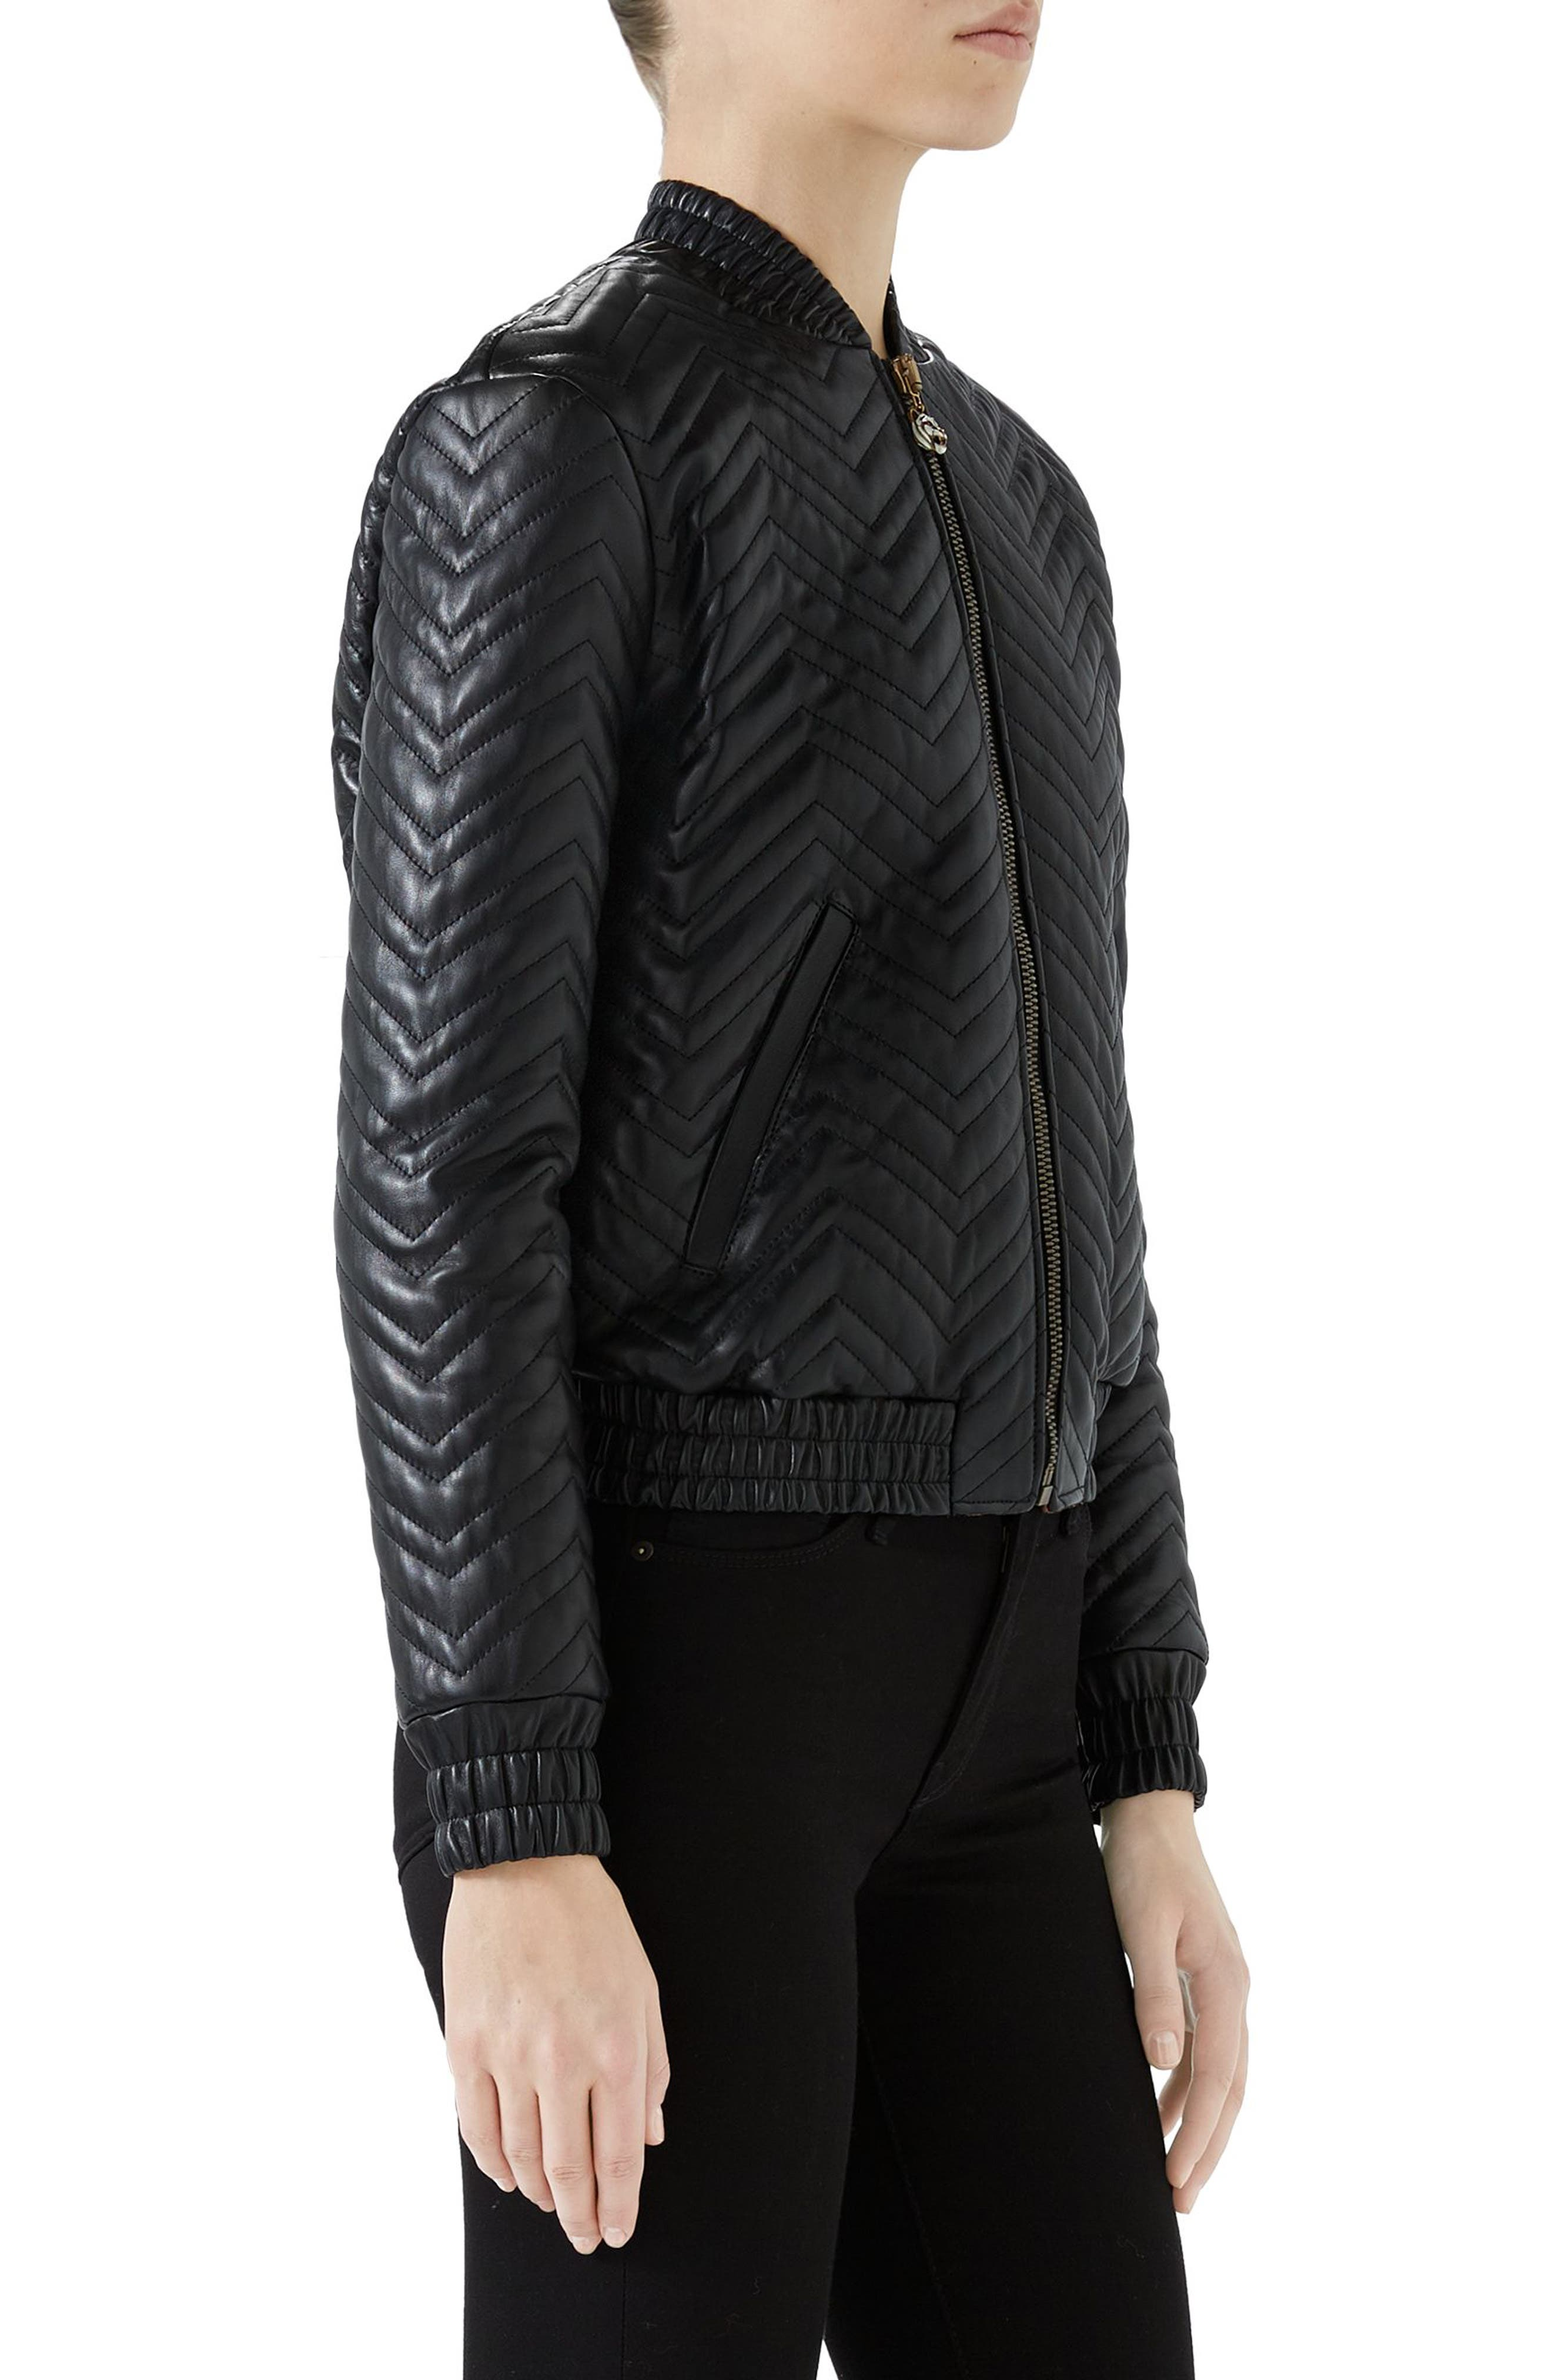 Quilted Leather Bomber Jacket,                             Alternate thumbnail 3, color,                             Black